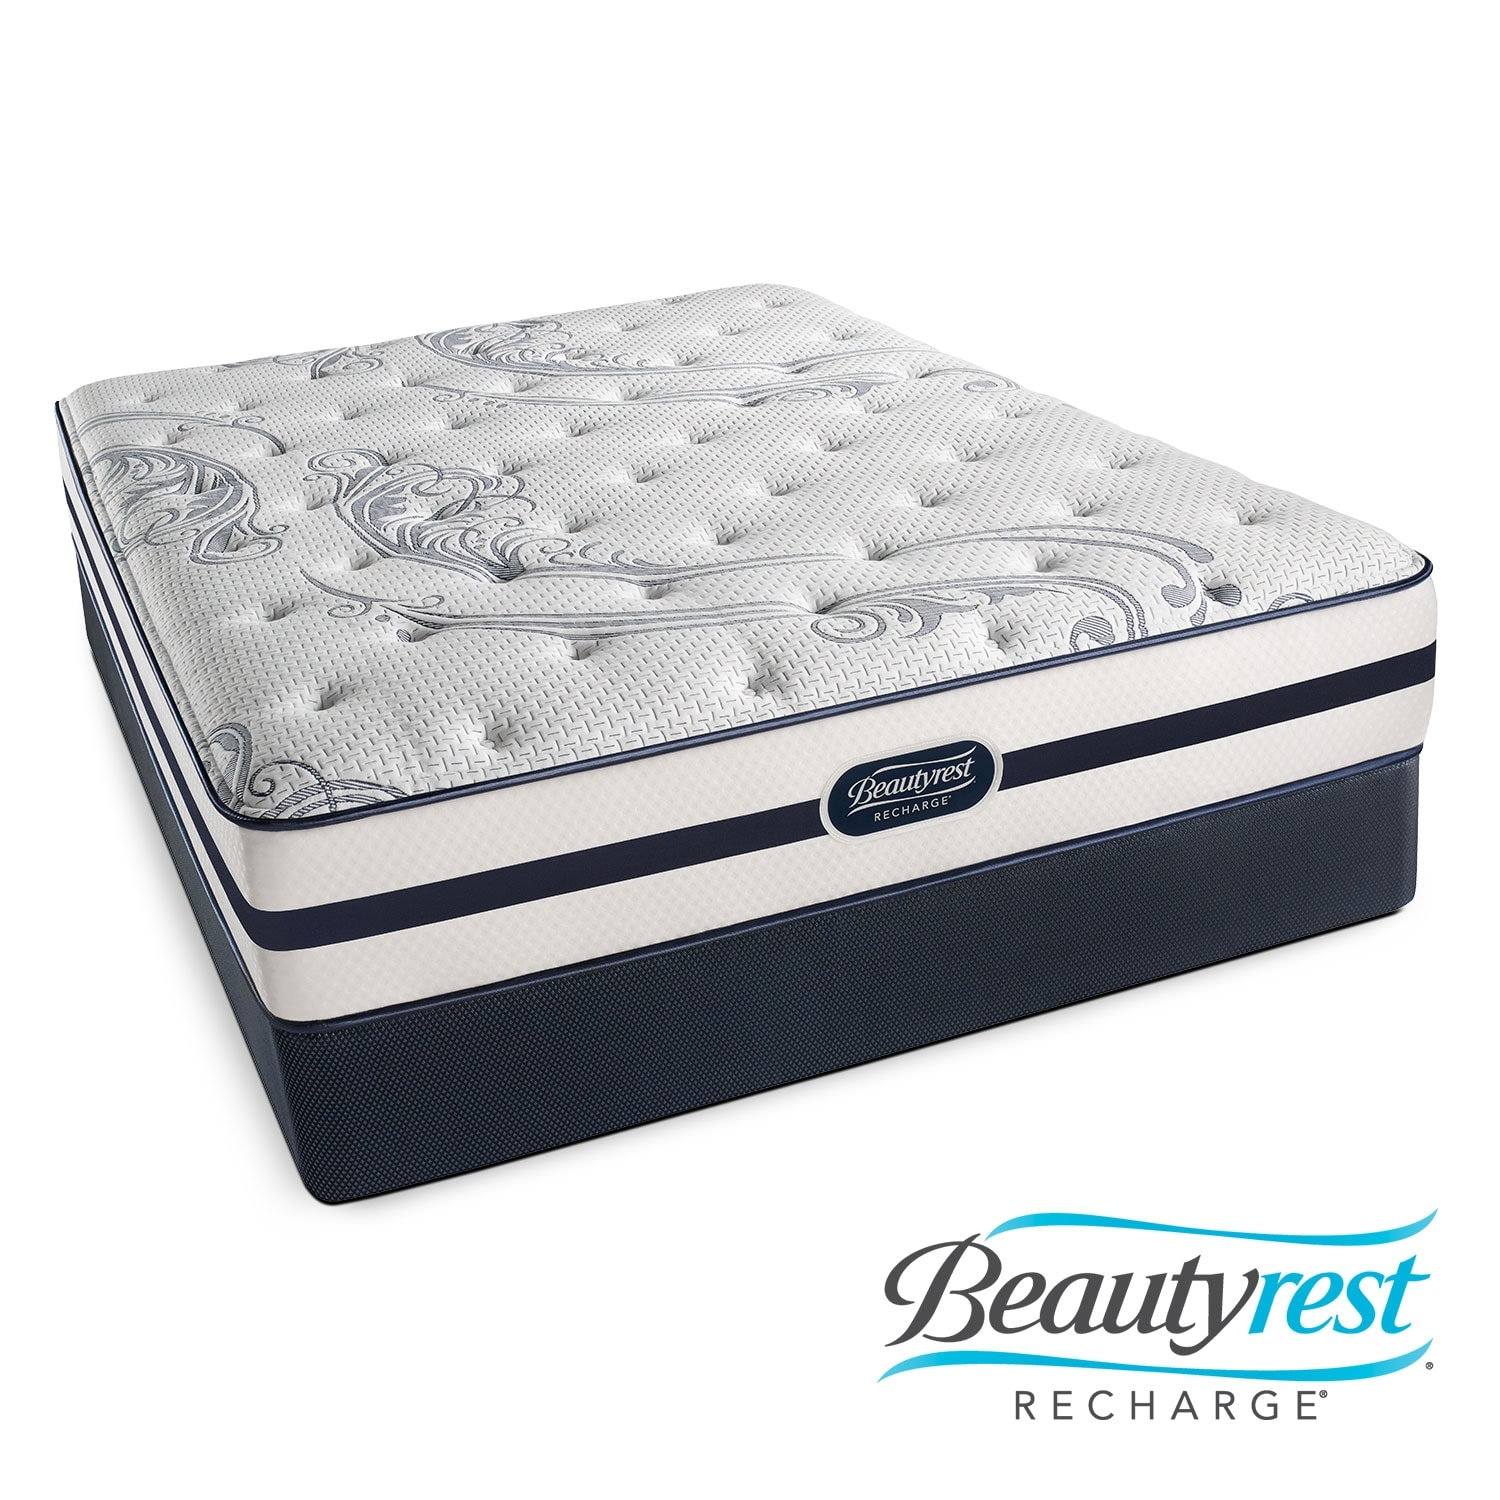 Mattresses and Bedding - Alisa Luxury Firm King Mattress and Split Low-Profile Foundation Set